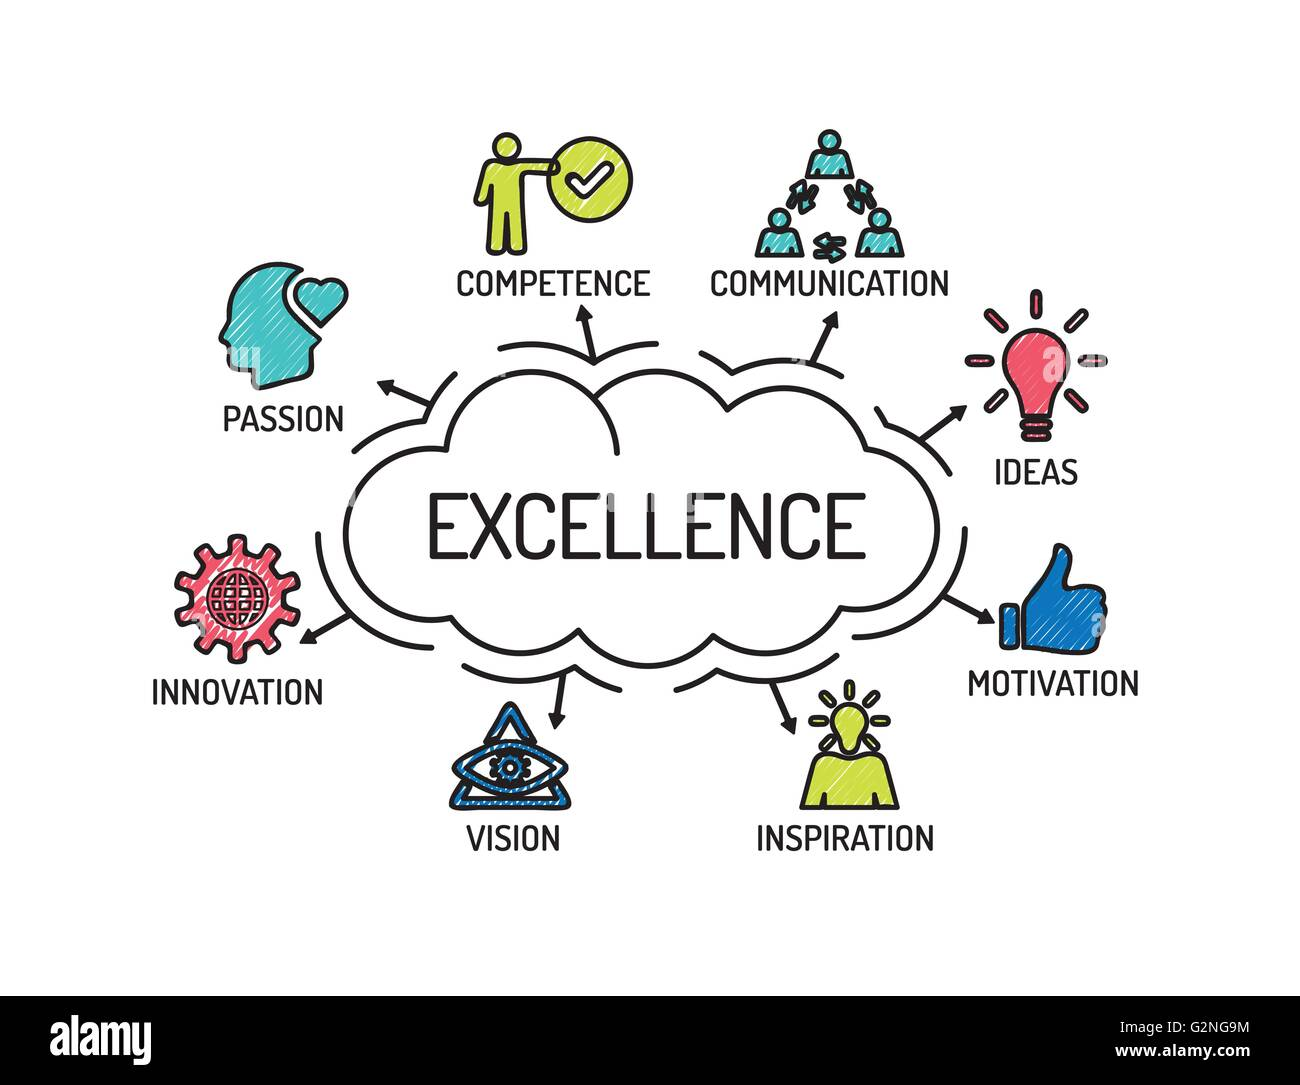 Excellence. Chart with keywords and icons. Sketch - Stock Image